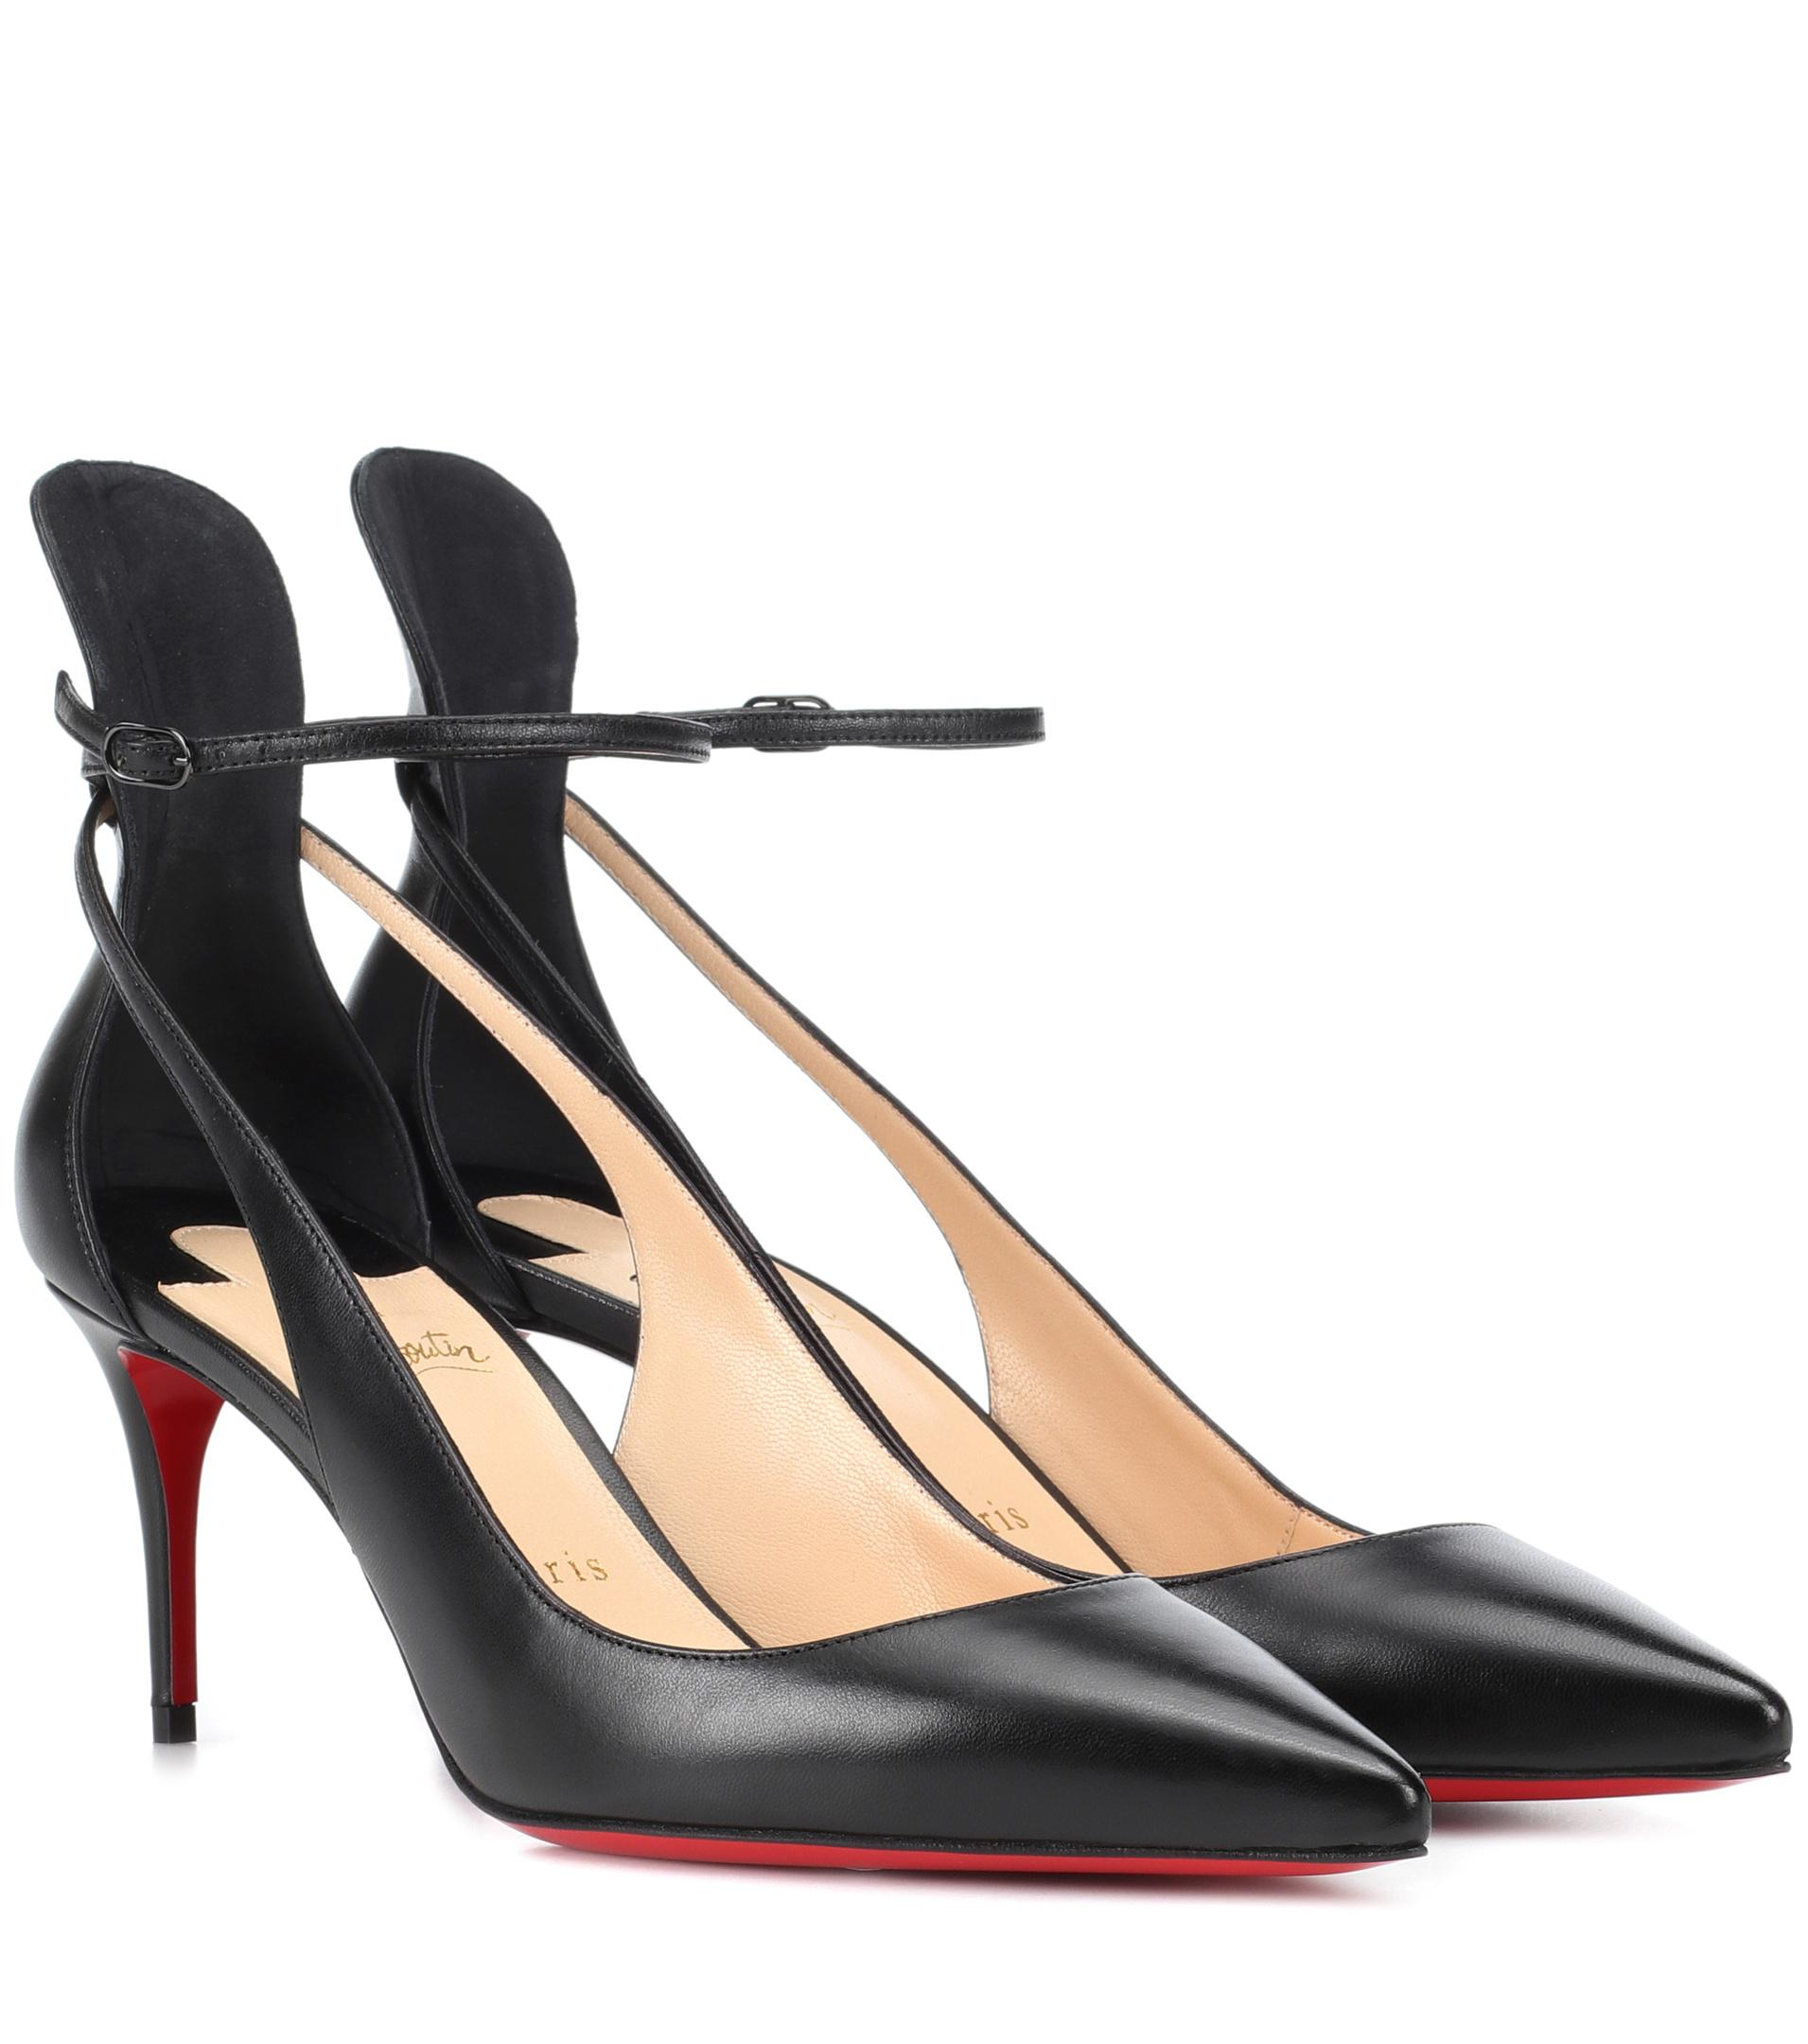 Mascara 70 leather pumps Christian Louboutin sD0AUYCN